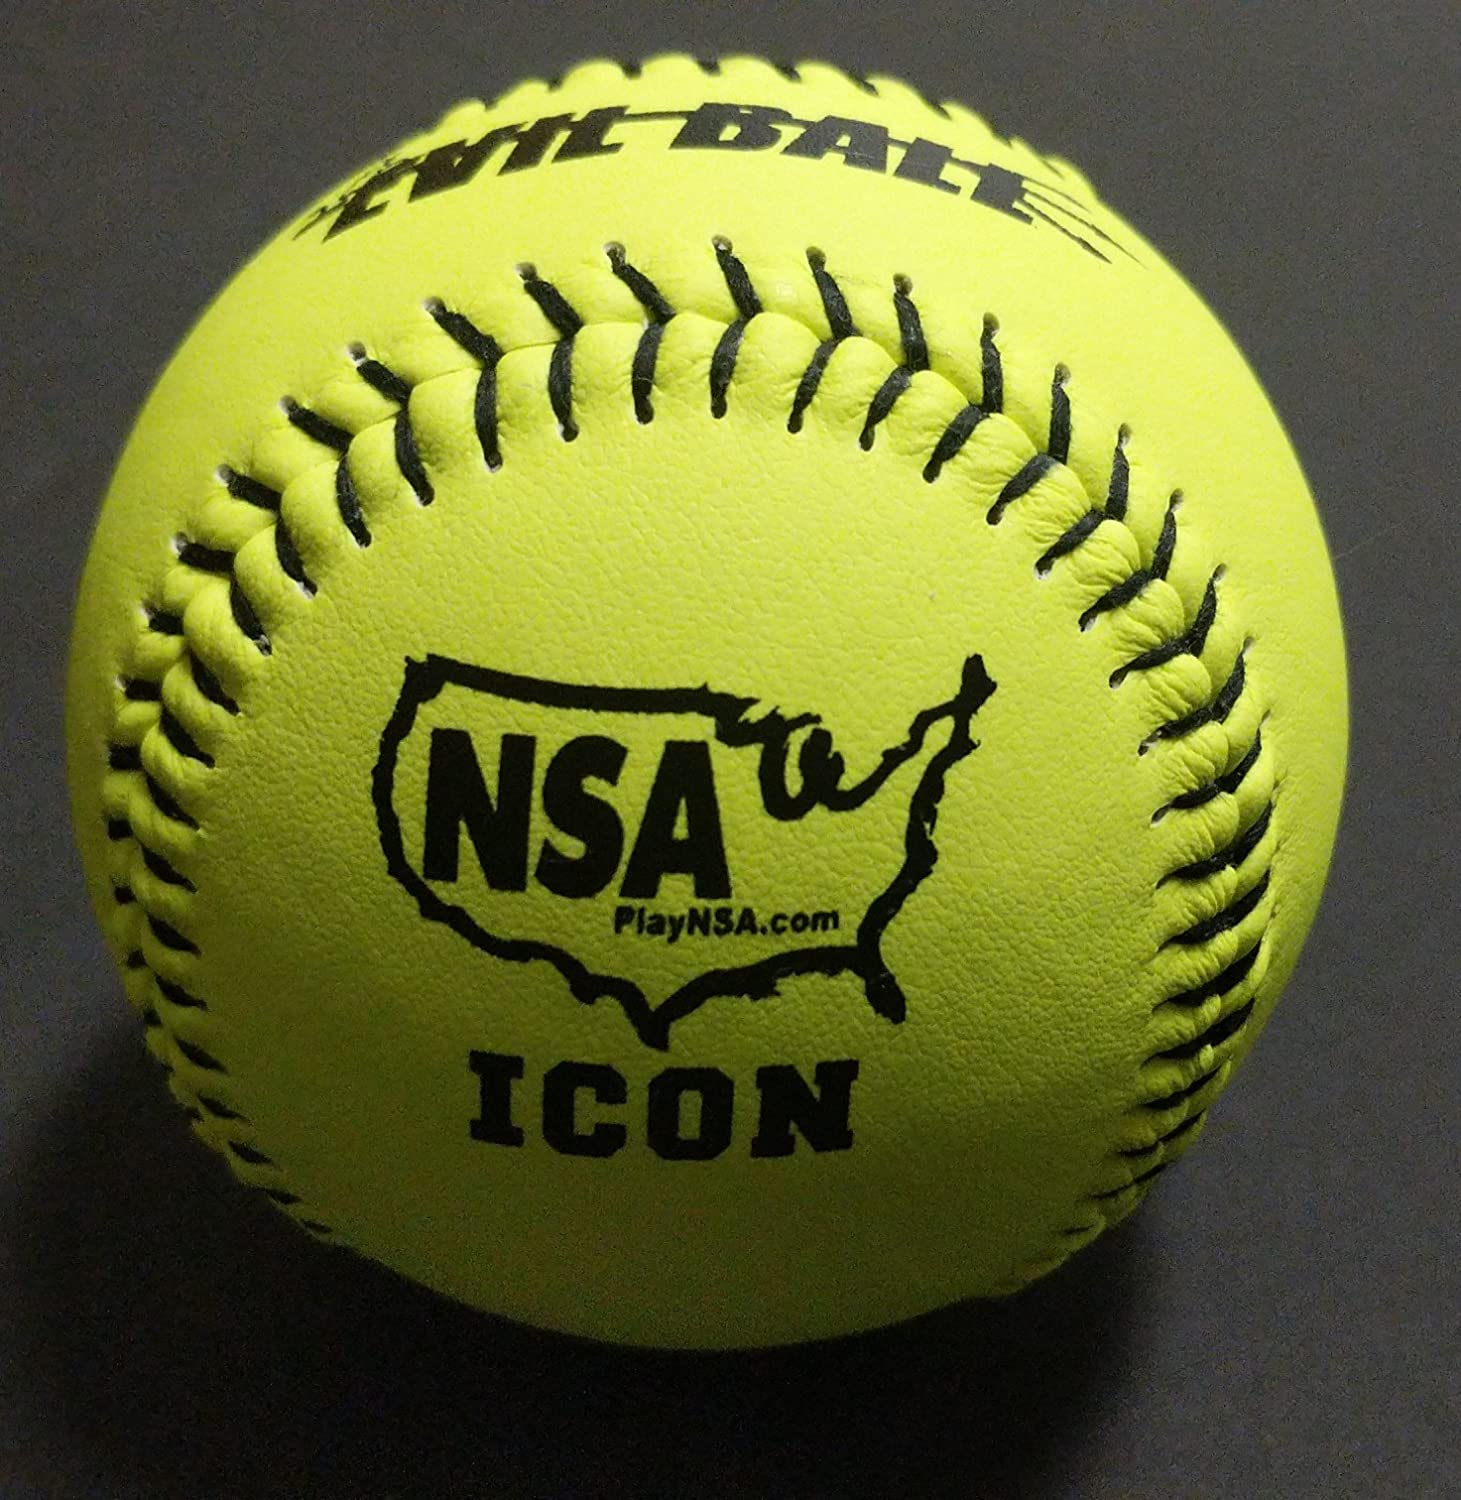 Trump Evil Sports 1 Dozen NSA Evil Ball 12 Softballs 44 COR 400 Compression 12 Balls (MPEvilNSAY)